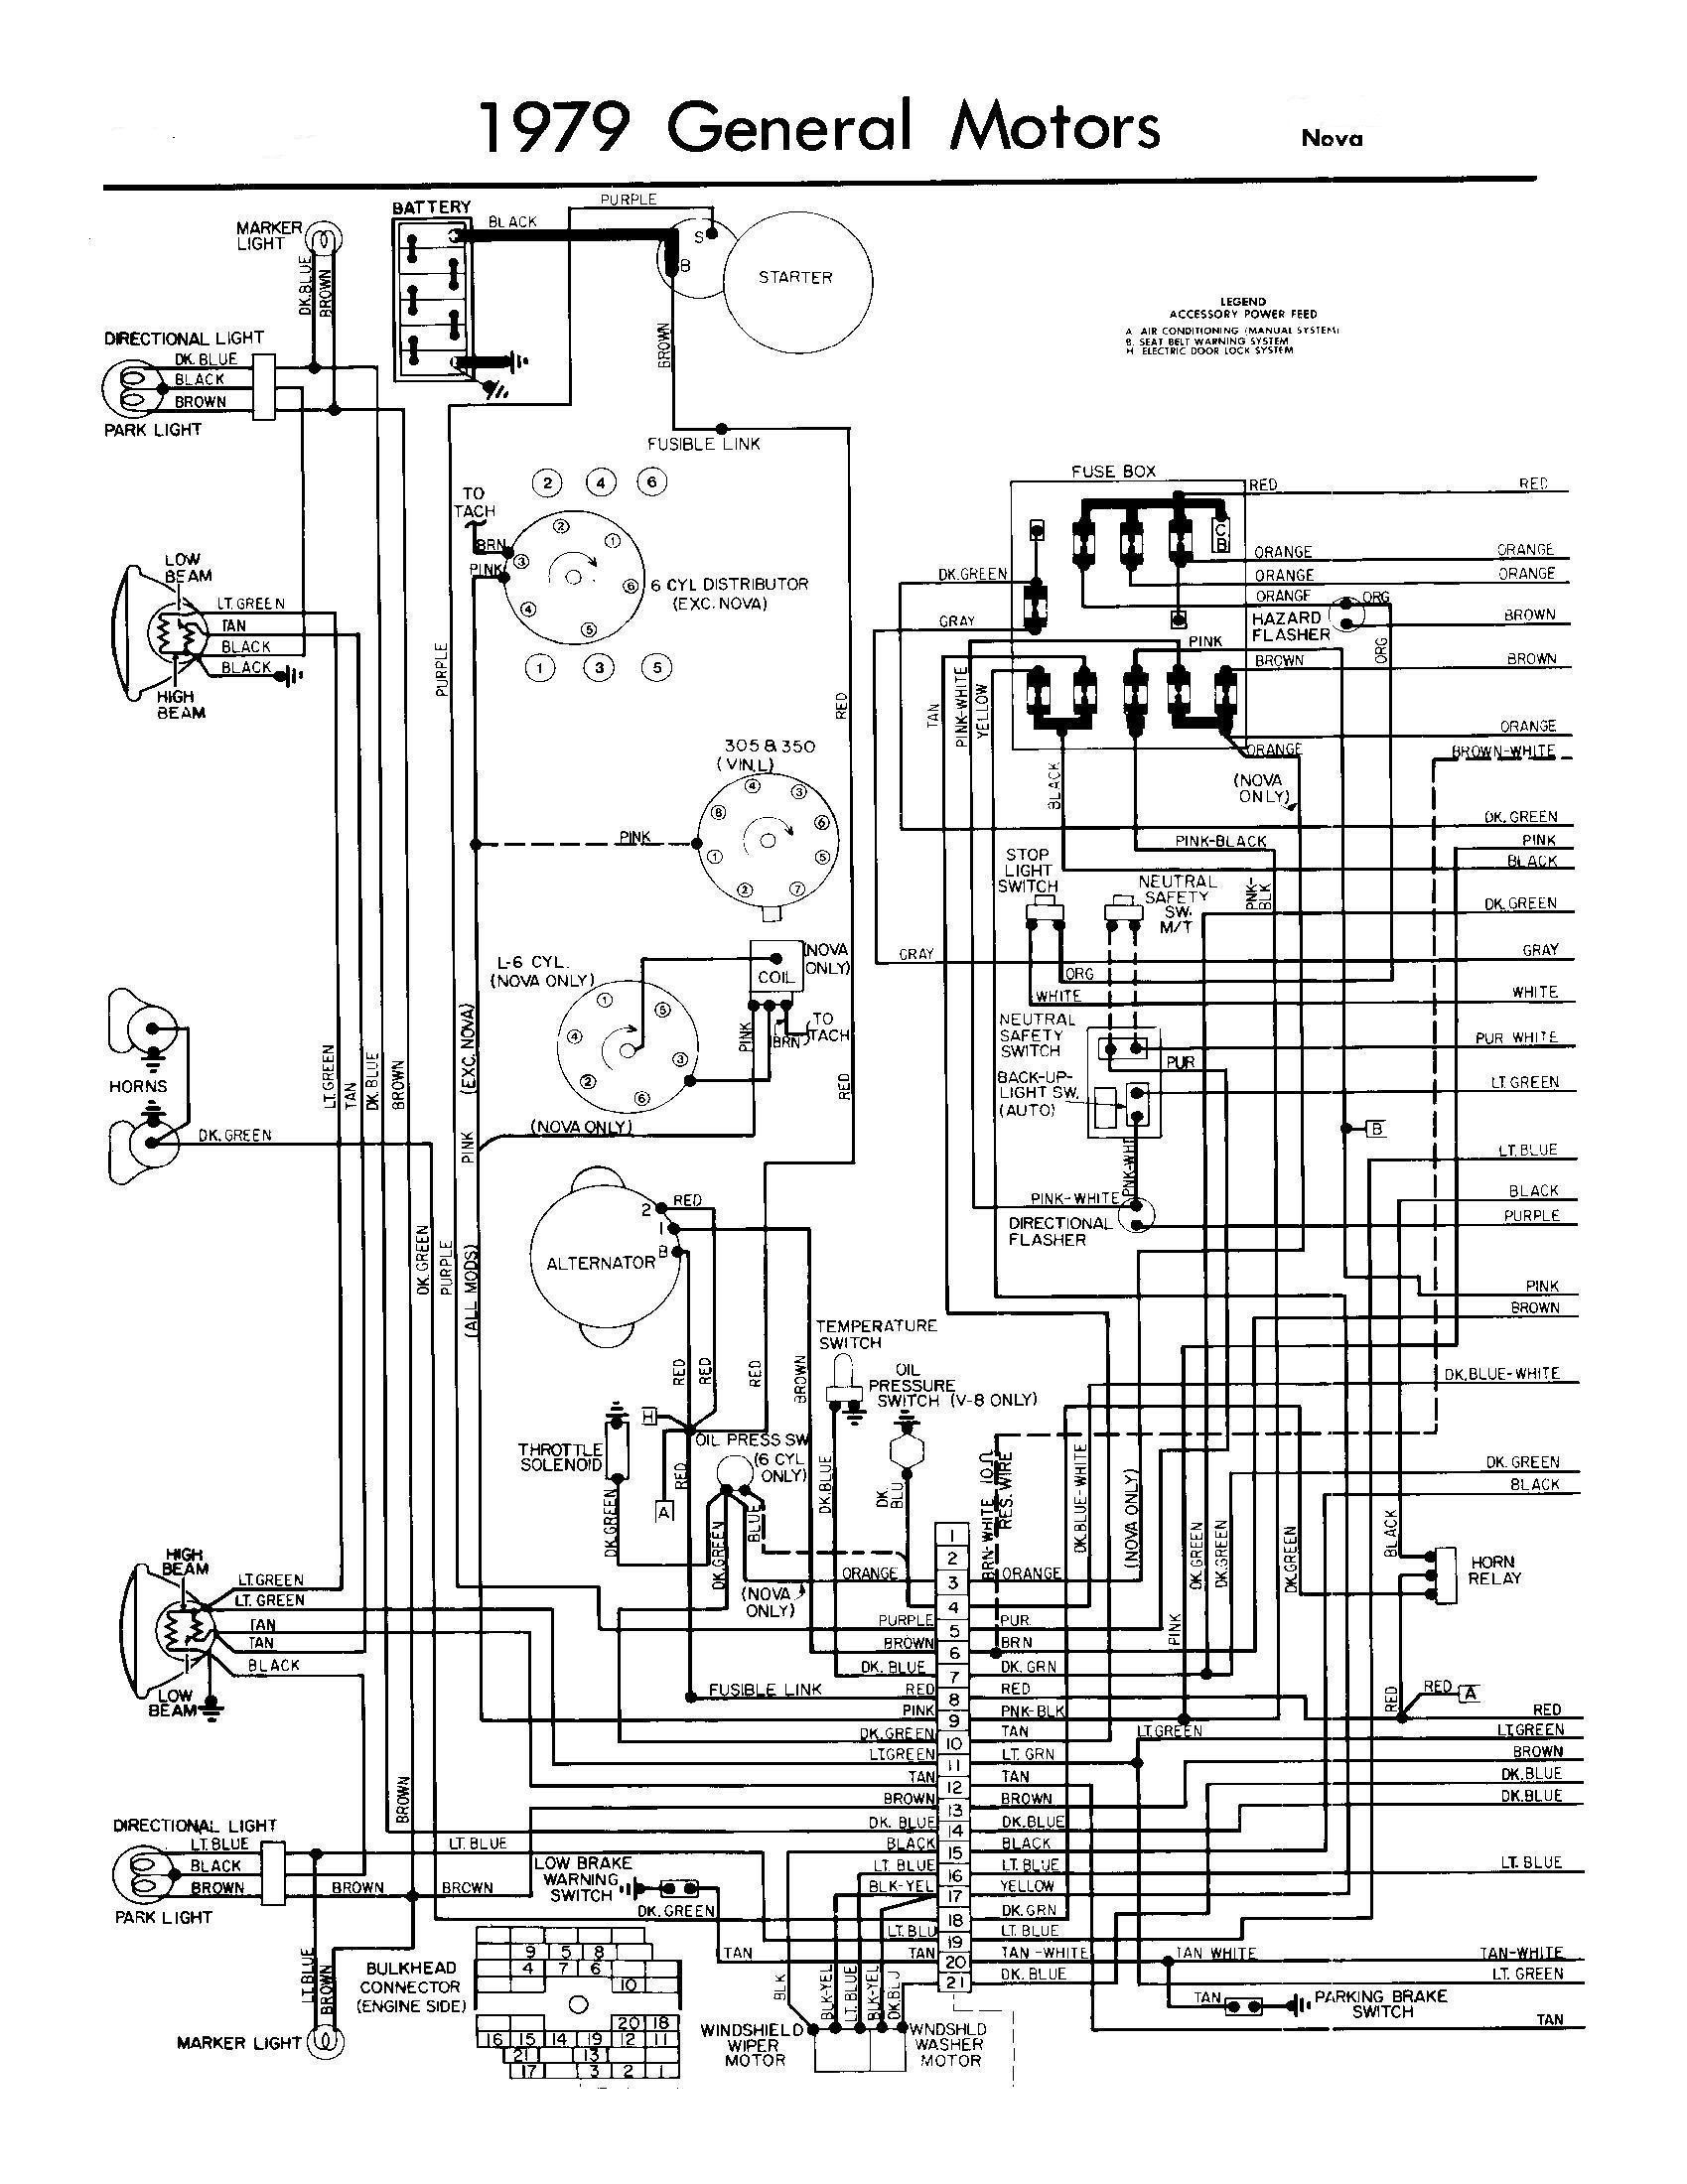 1984 dodge truck wiring harness wiring diagrams schema1976 dodge pickup wire harness download wiring diagram volvo truck wiring harness 1984 dodge truck wiring